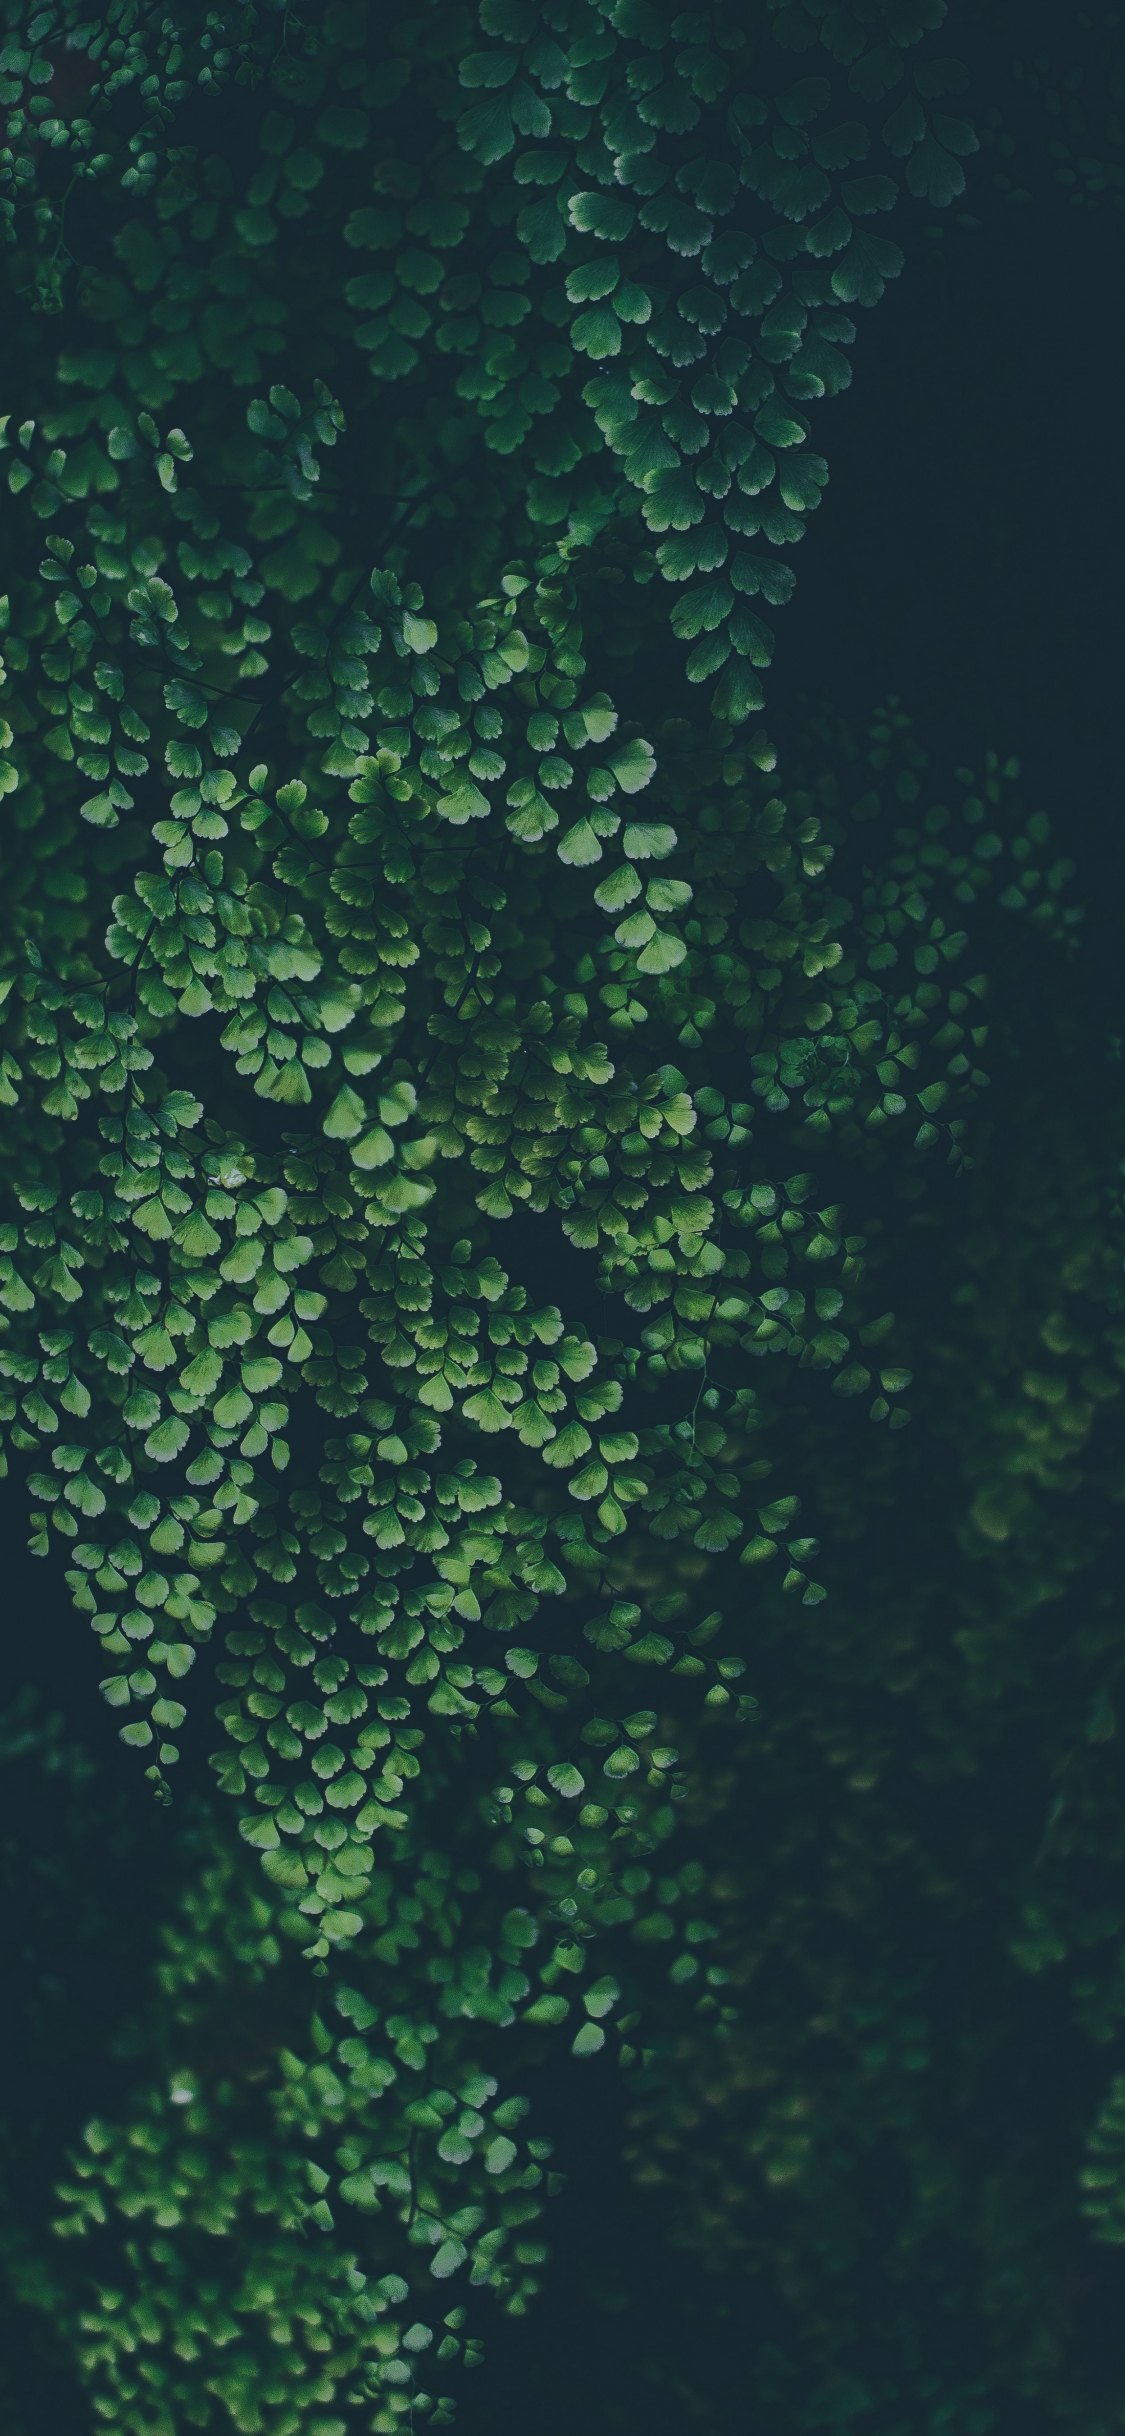 Download 1125x2436 Wallpaper Green Leaves Clover Nature